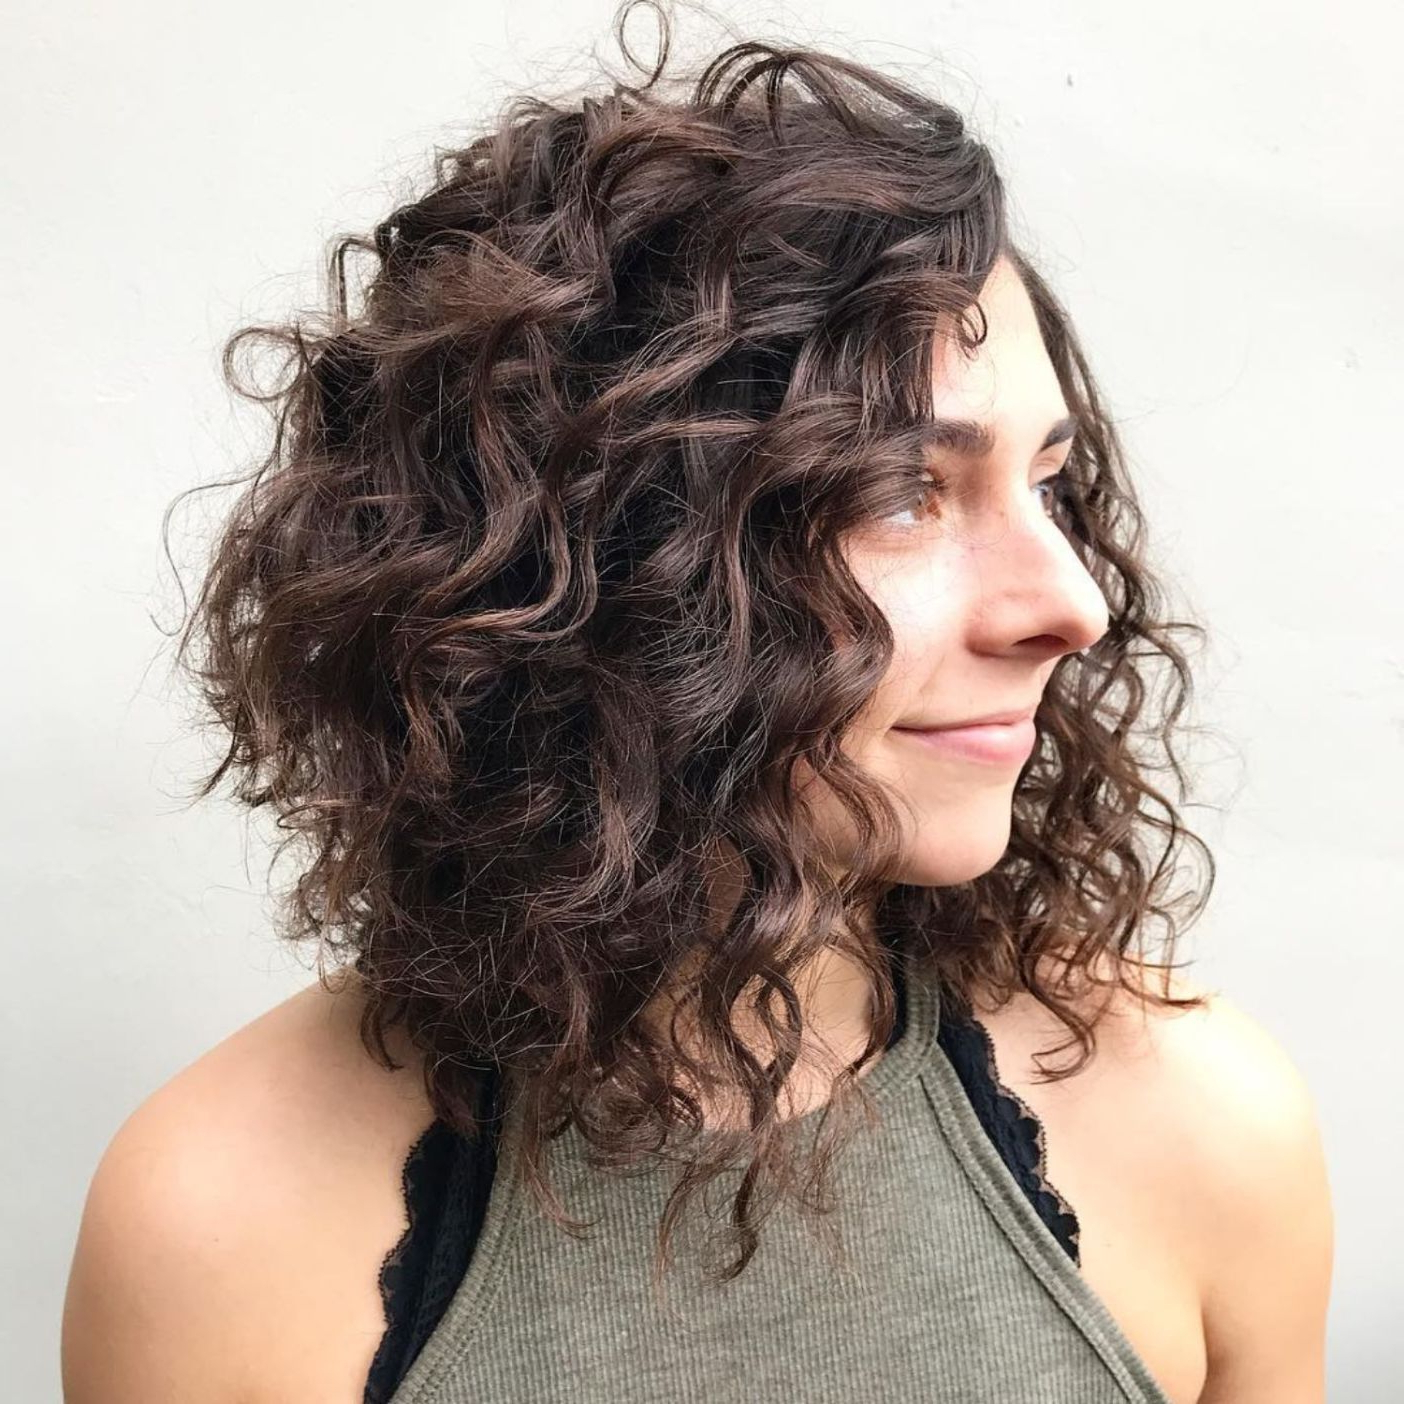 65 Different Versions Of Curly Bob Hairstyle In 2019 | Curly For Textured Curly Bob Haircuts (View 5 of 20)